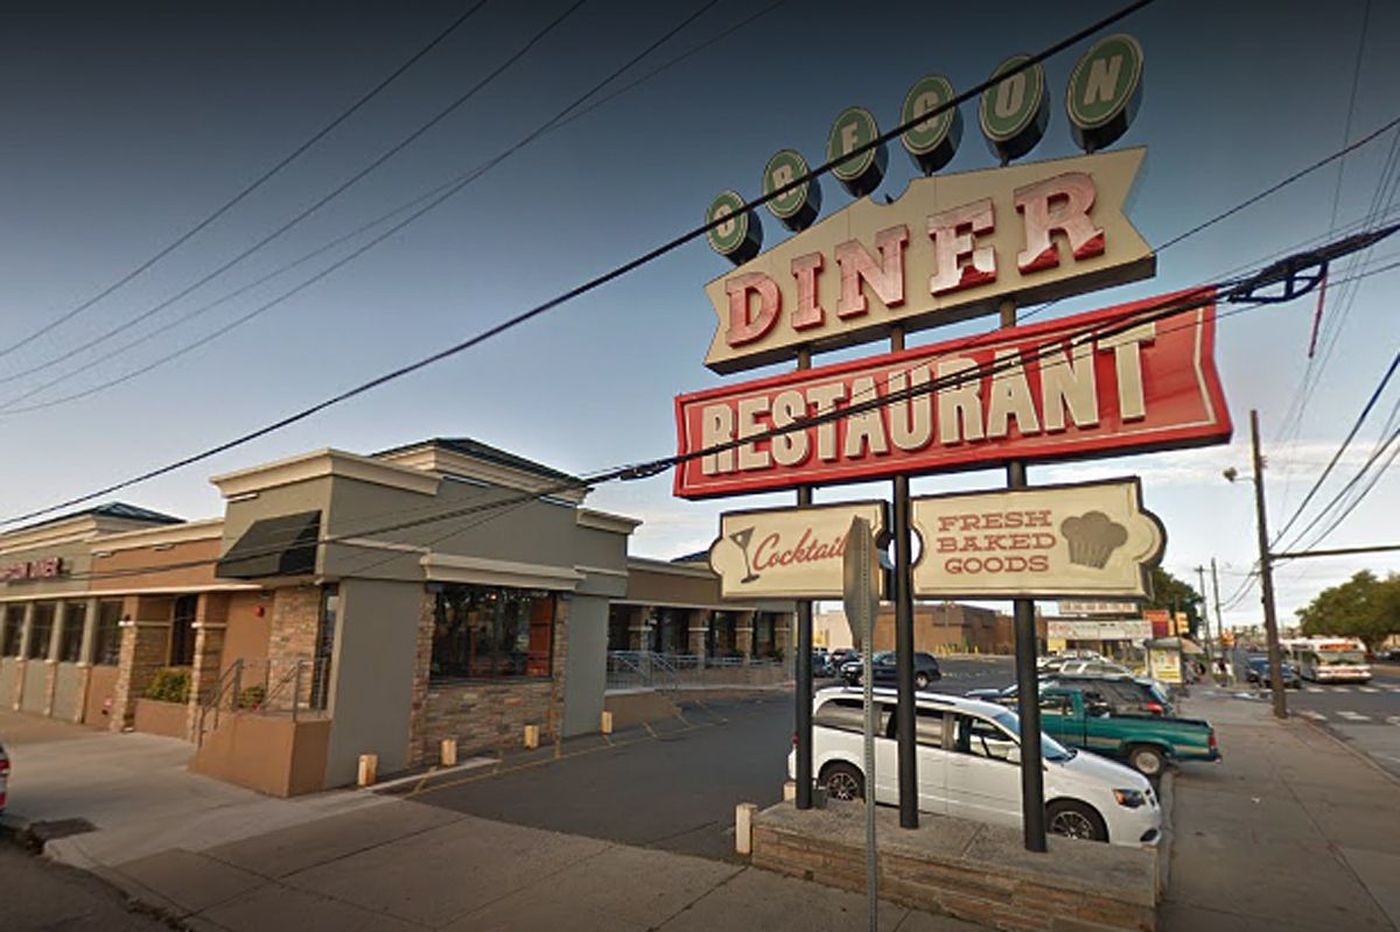 Oregon Diner is the latest to cut back on 24-hour service